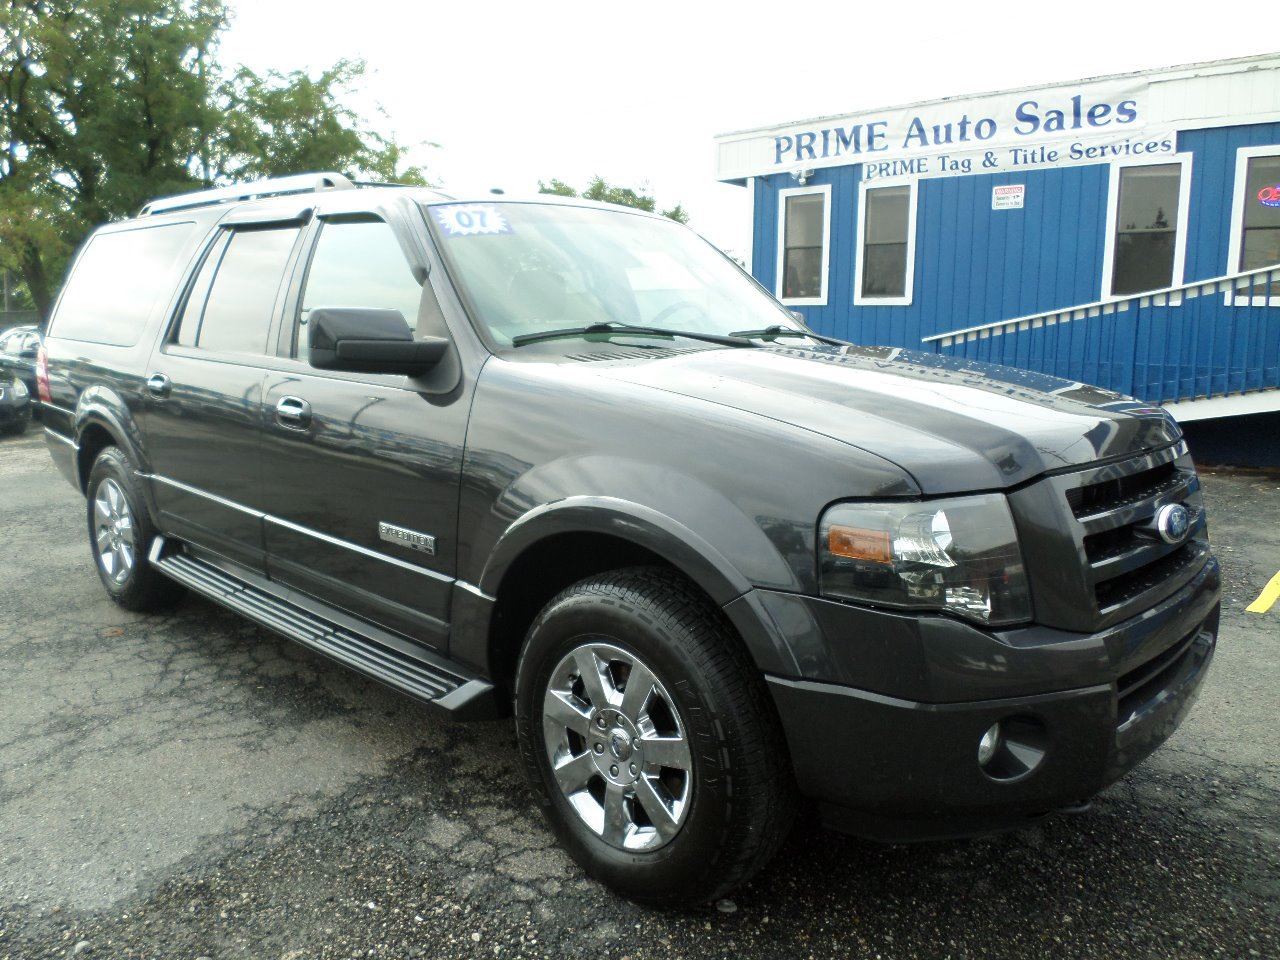 Ford Expedition El For Sale At Prime Auto Sales In Baltimore Md